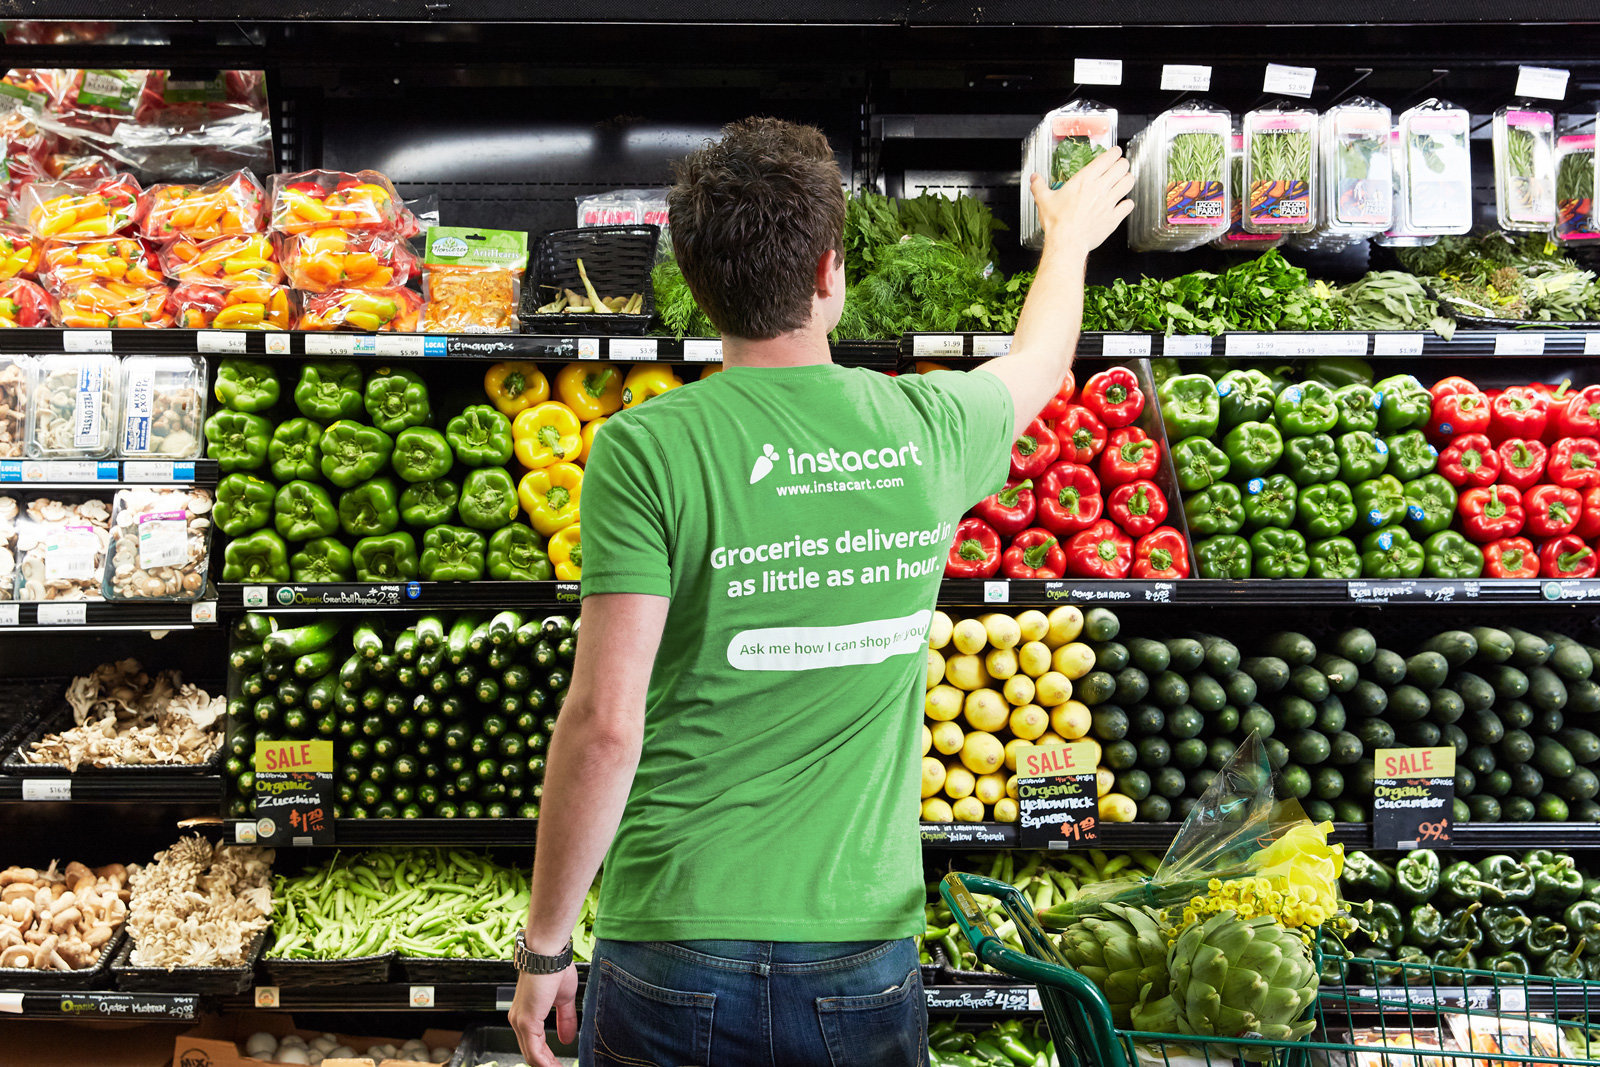 Instacart Slashes Quality Bonuses For Couriers